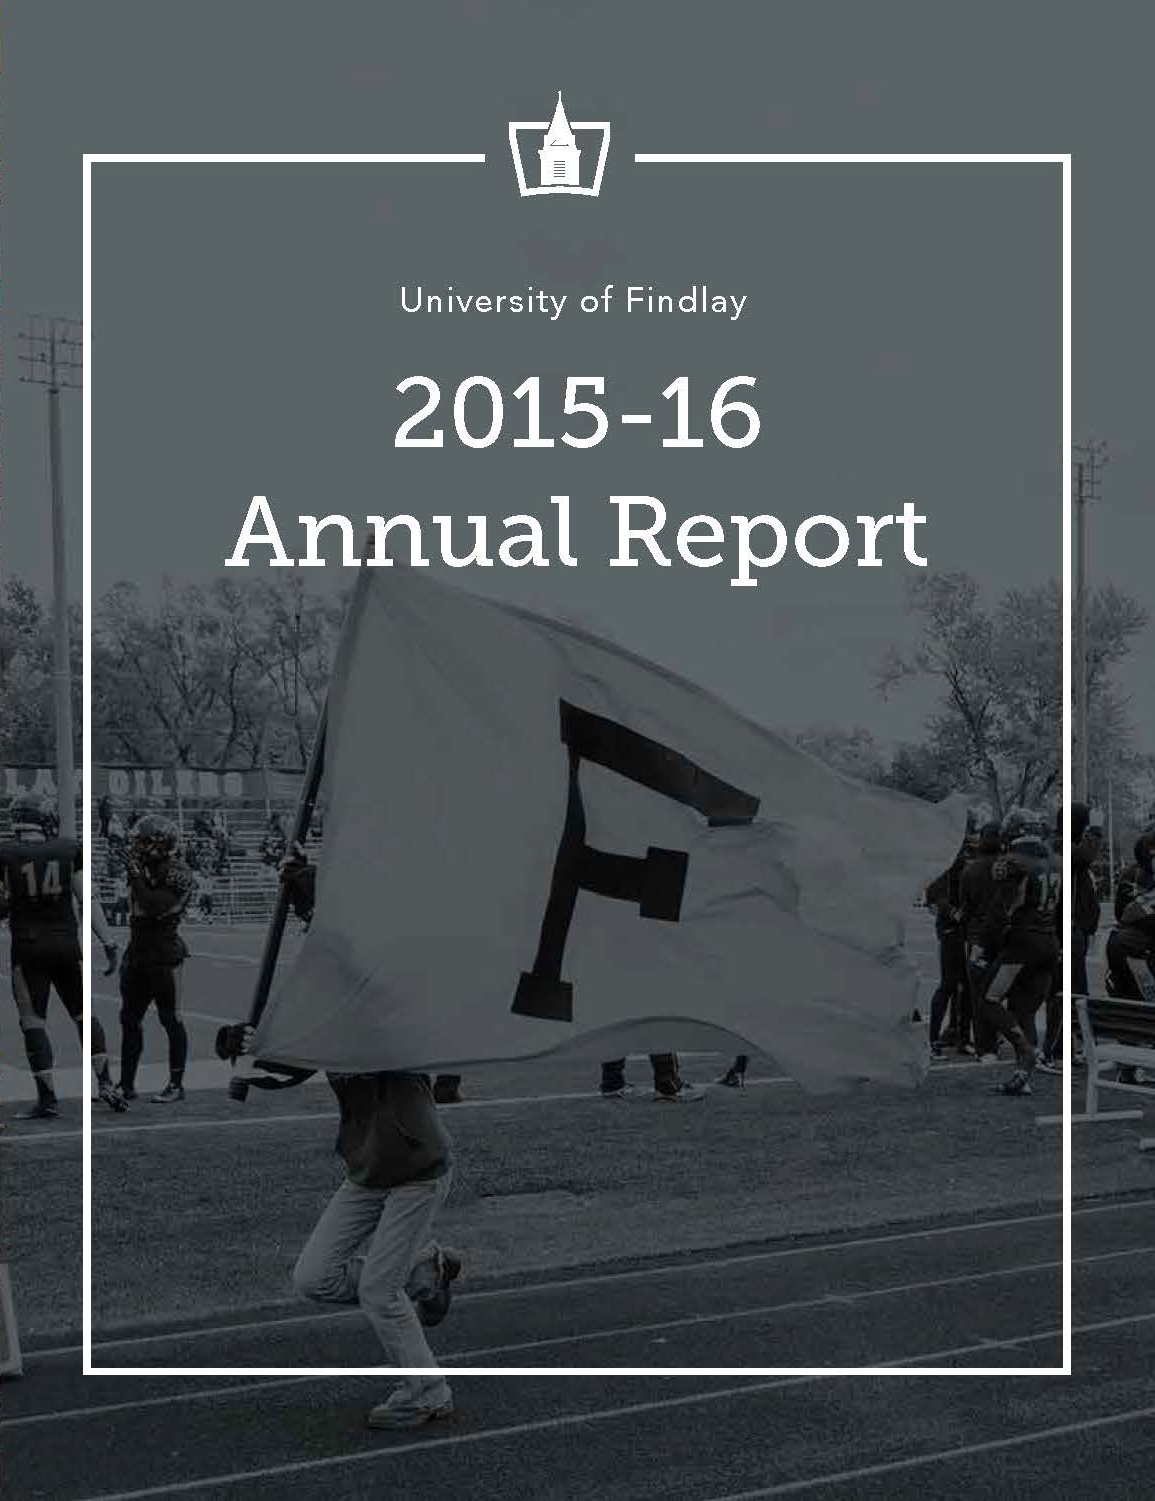 2016 Annual report download